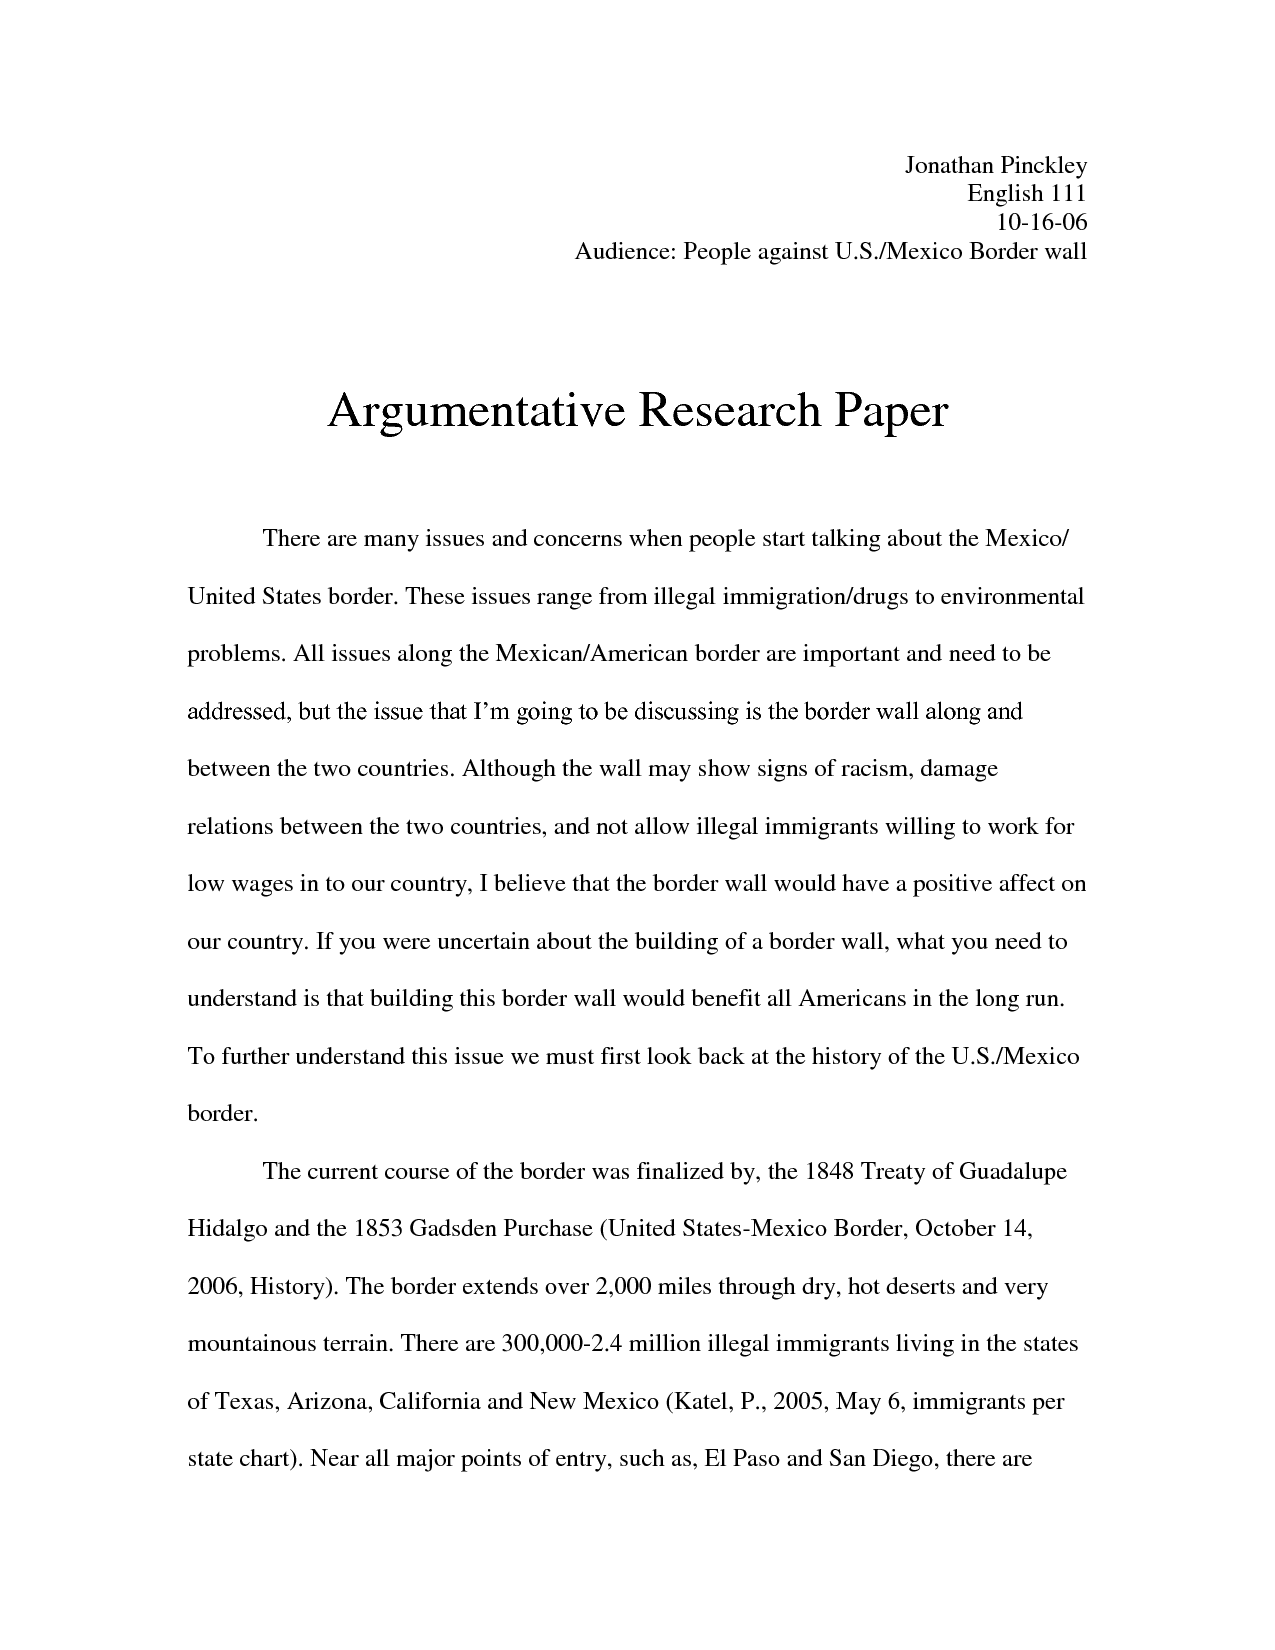 argumentative research paper format coursework service